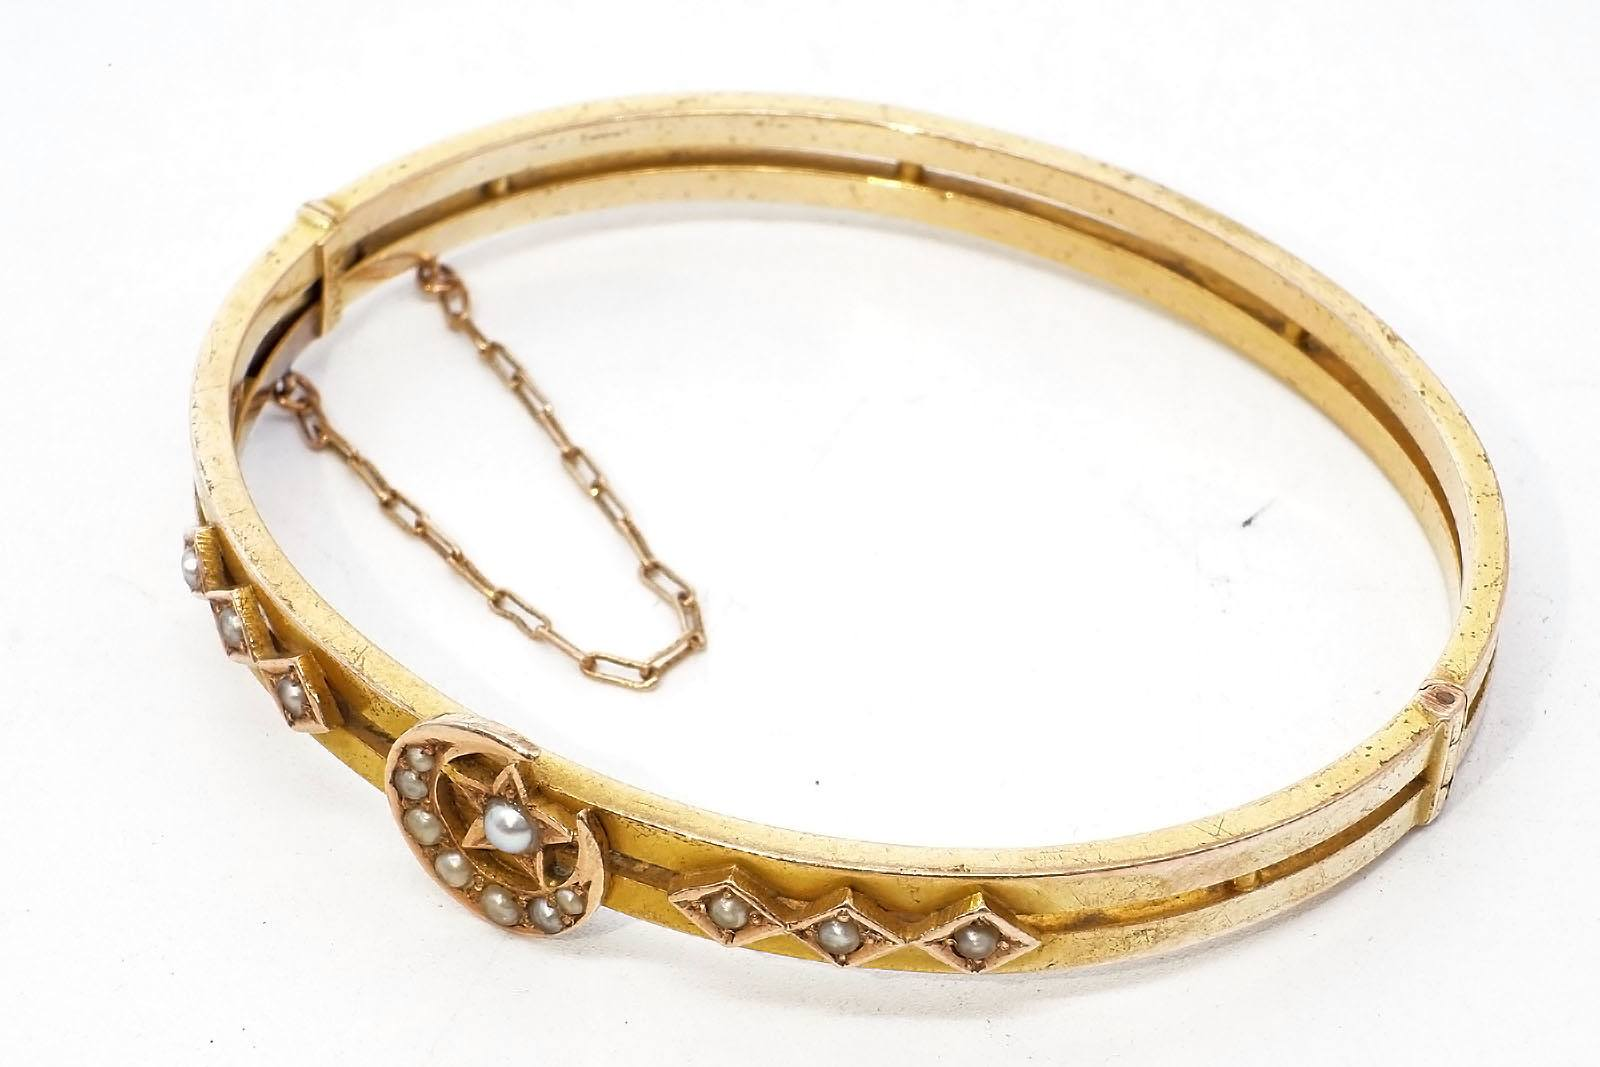 '15ct Yellow Gold Hinged Bangle, Top with Crescent Moon and Star with Six Diamond Shaped Boxes all Set with Half Seed Pearls, 9.7g'